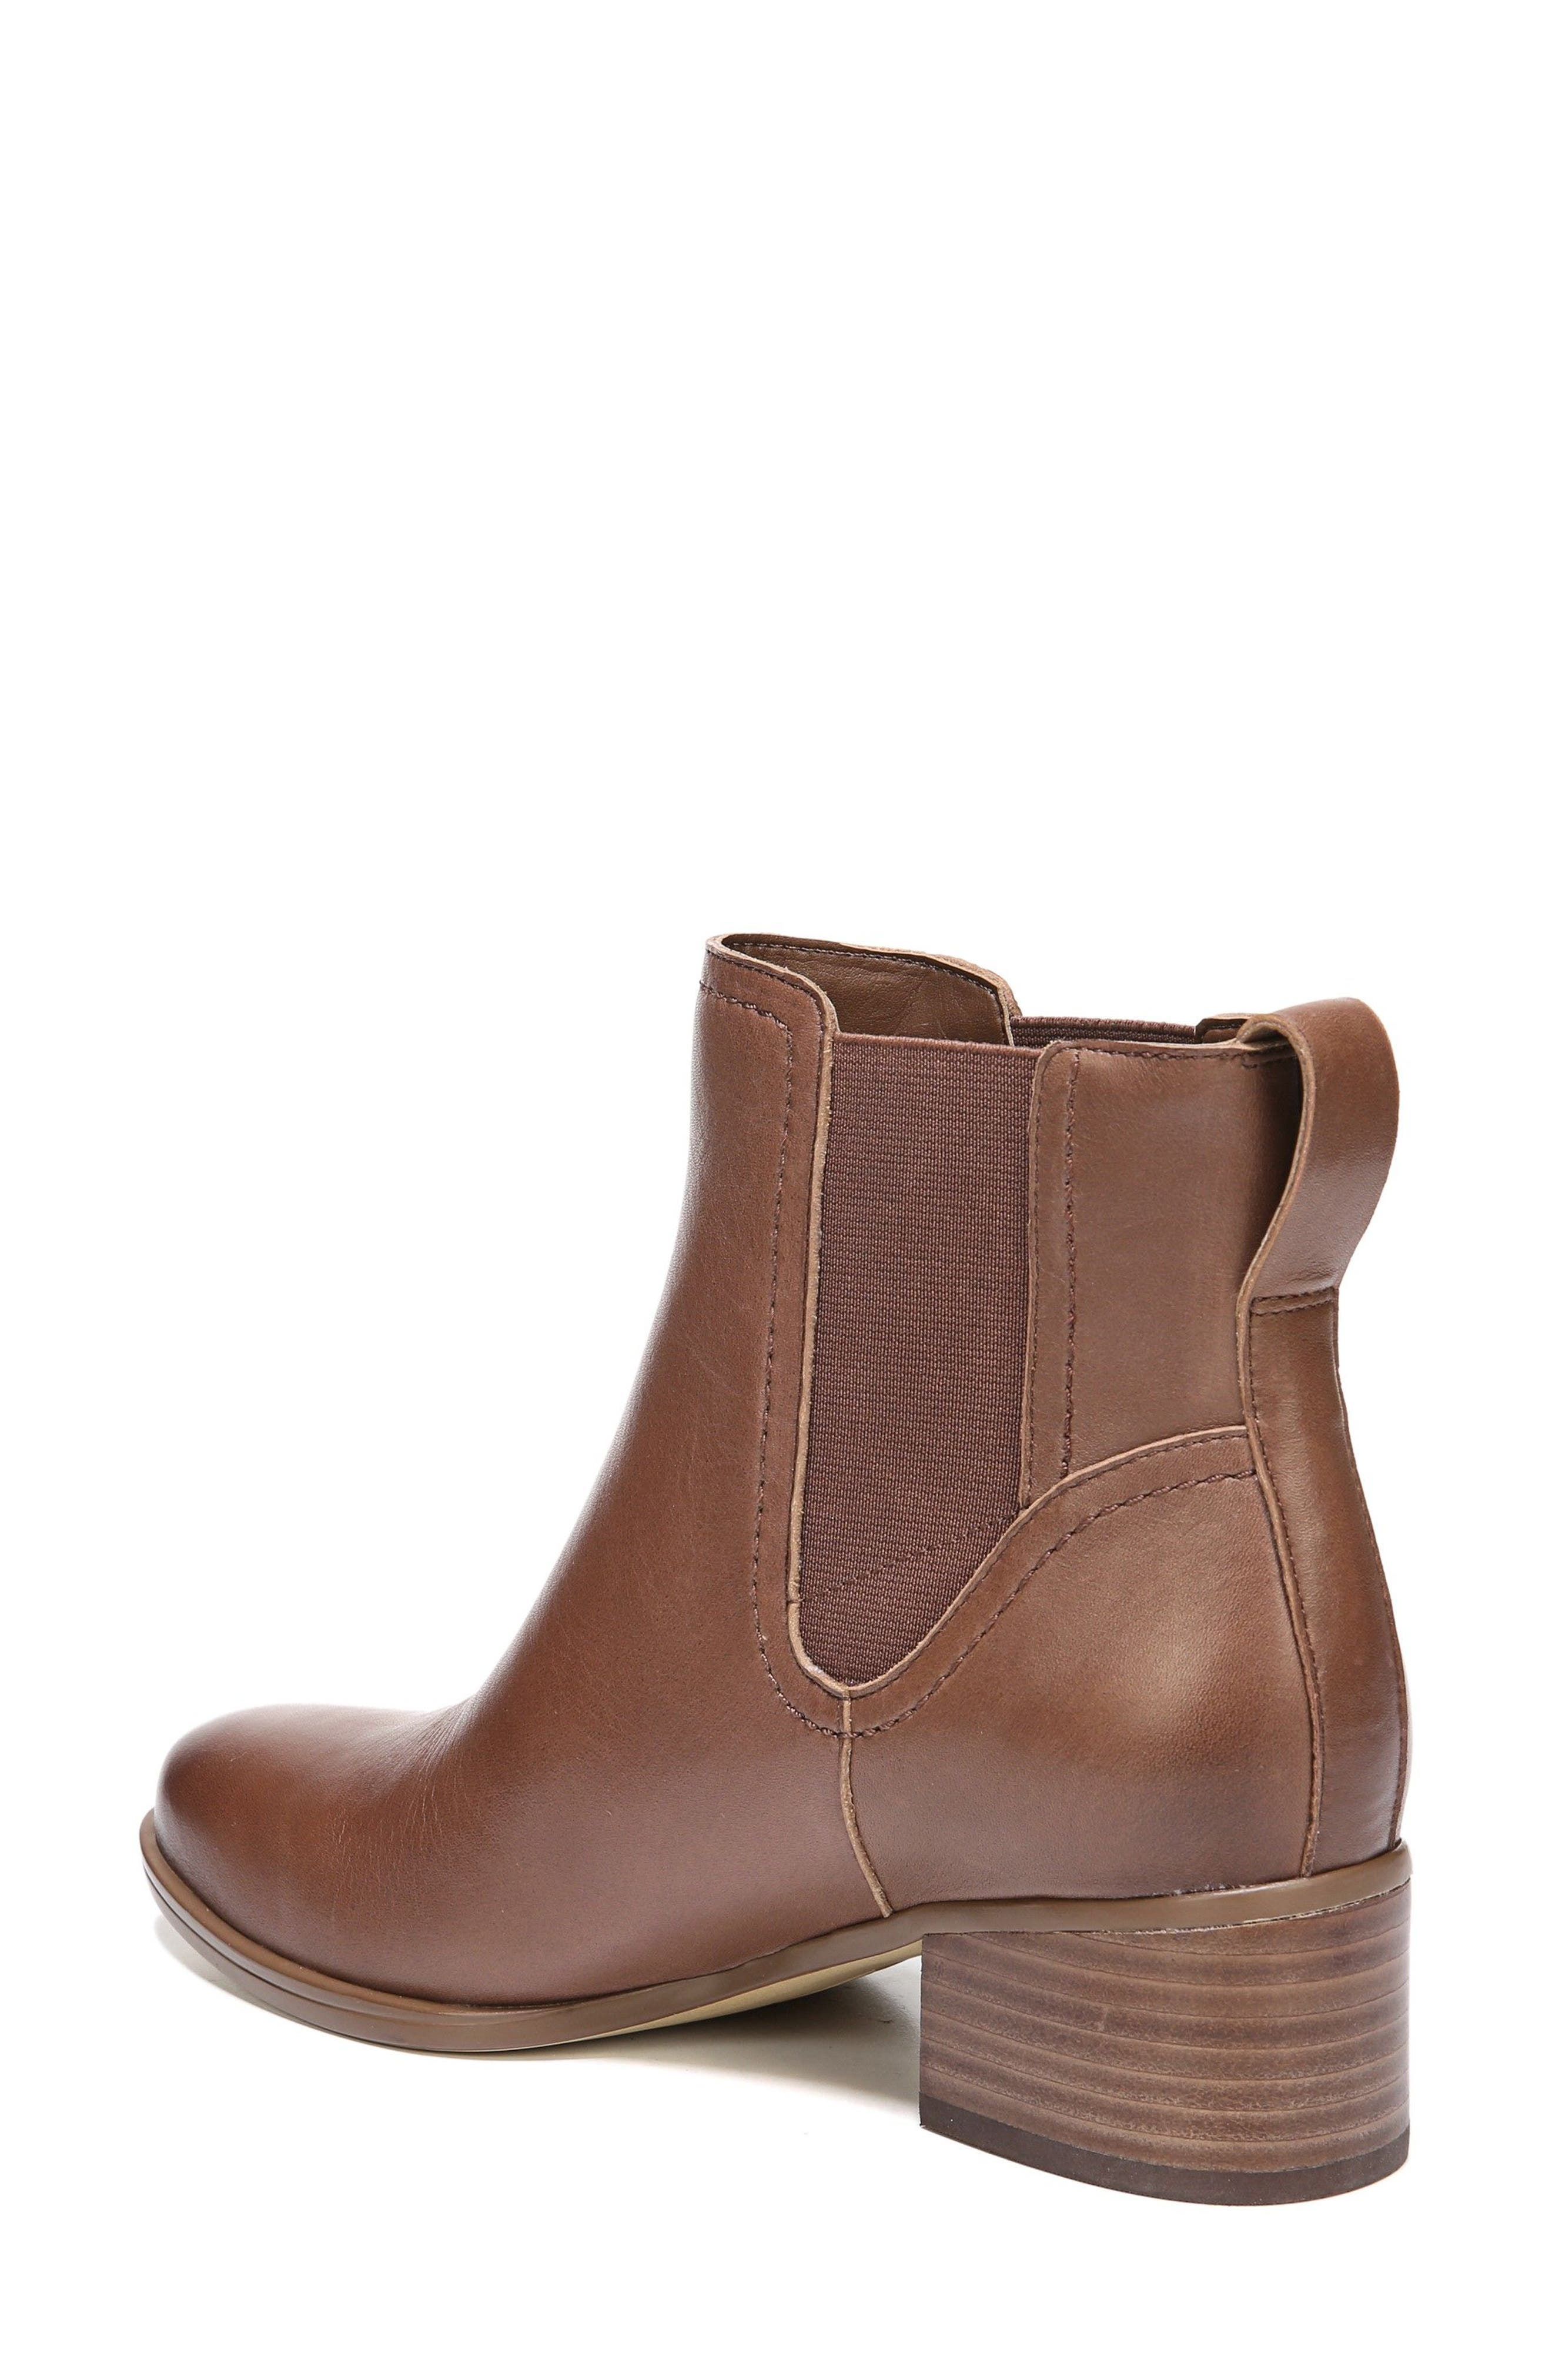 Dallas Chelsea Boot,                             Alternate thumbnail 2, color,                             Coffee Bean Leather